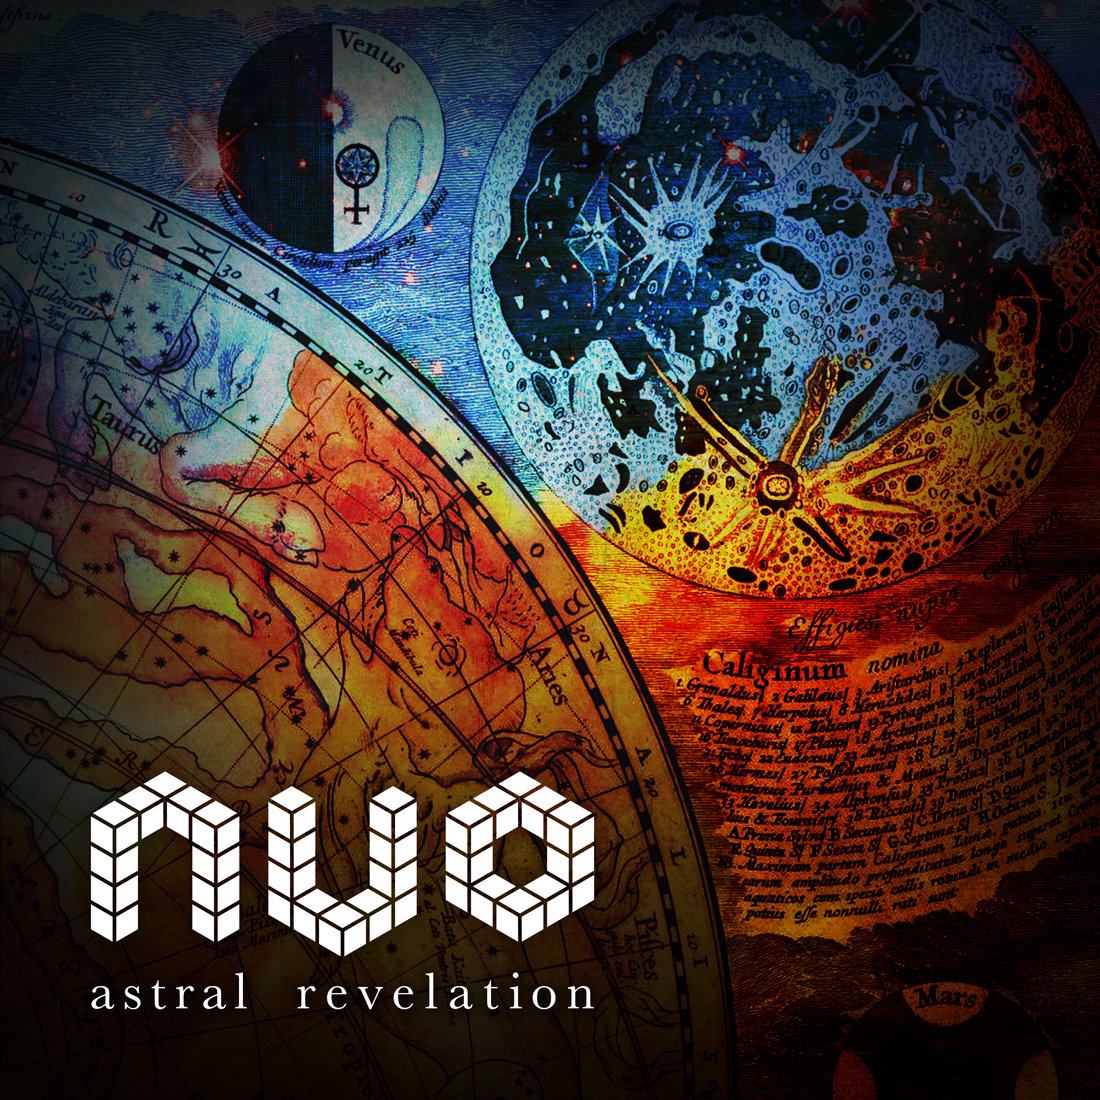 NVO - Astral Revelation (Deep Remix) @ 'Astral Revelation' album (deep house, electro house)